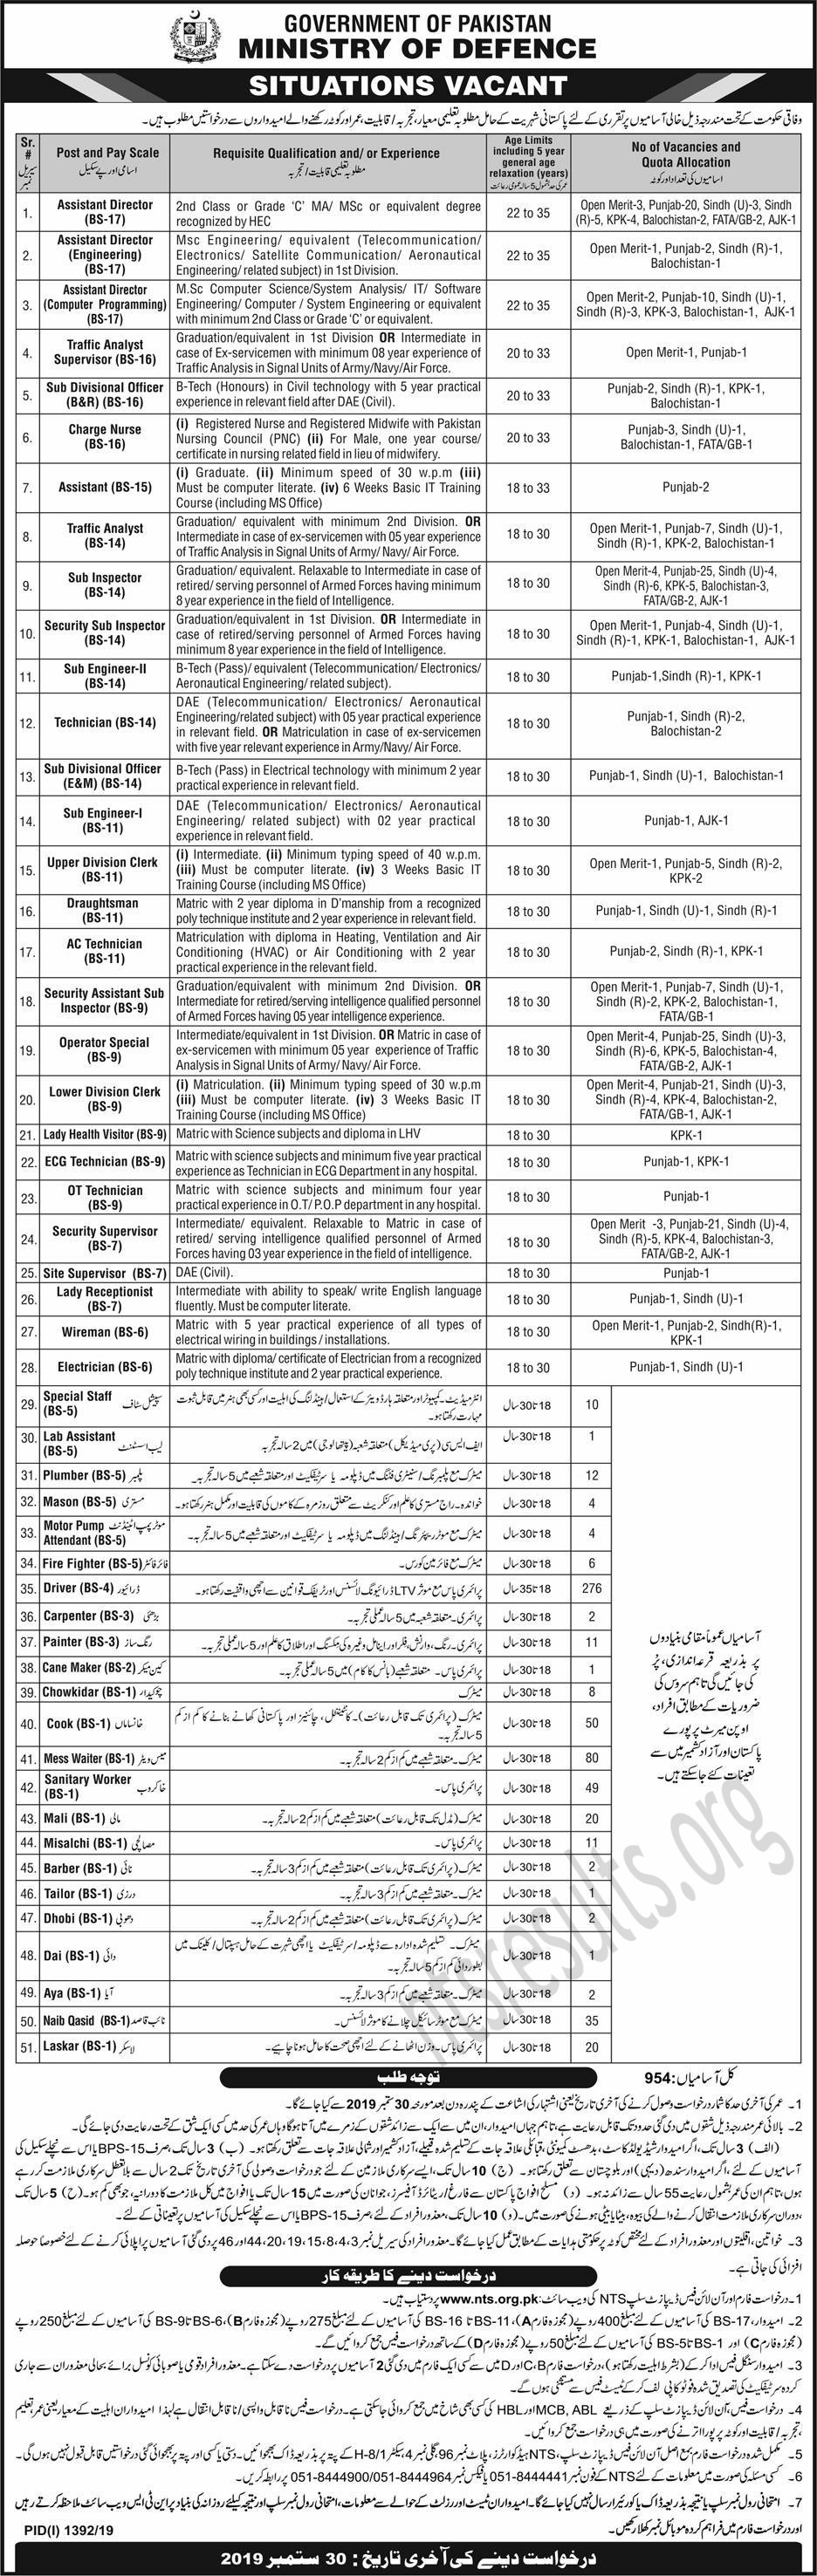 Government of Pakistan Ministry of Defence MOD Jobs Via NTS